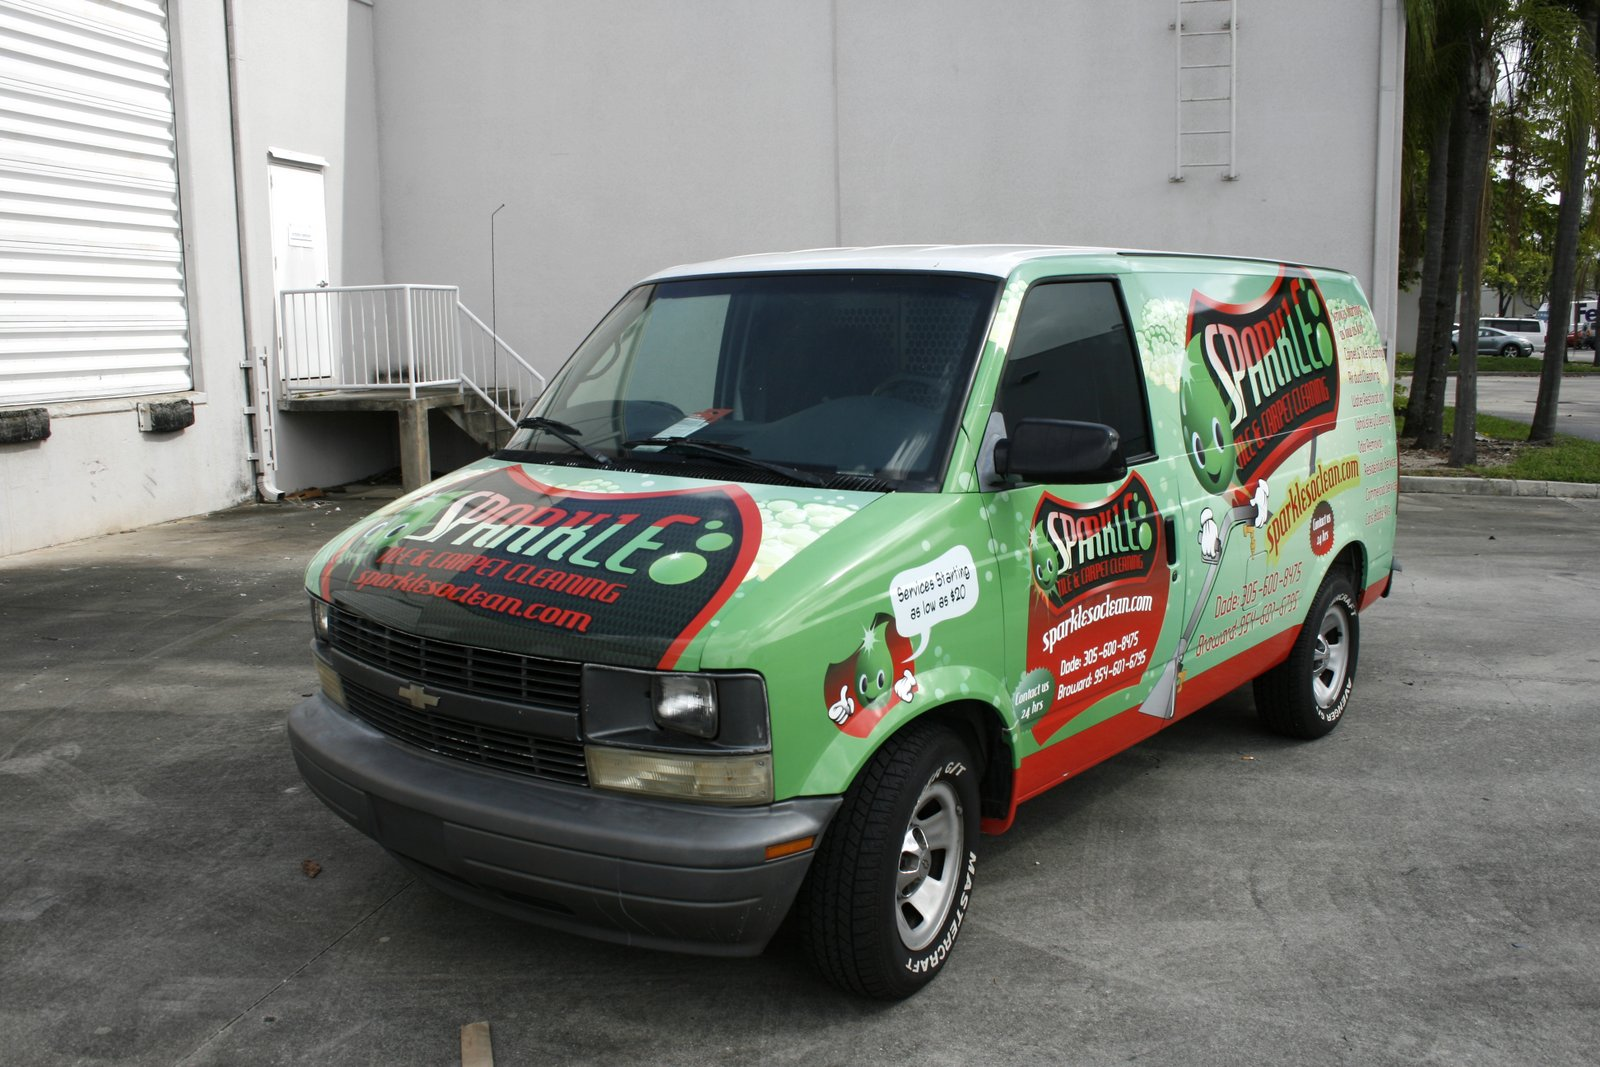 fort lauderdale fl chevy astro van car wrap for carpet cleaing company sparkle so clean car wrap solutions [ 1600 x 1067 Pixel ]